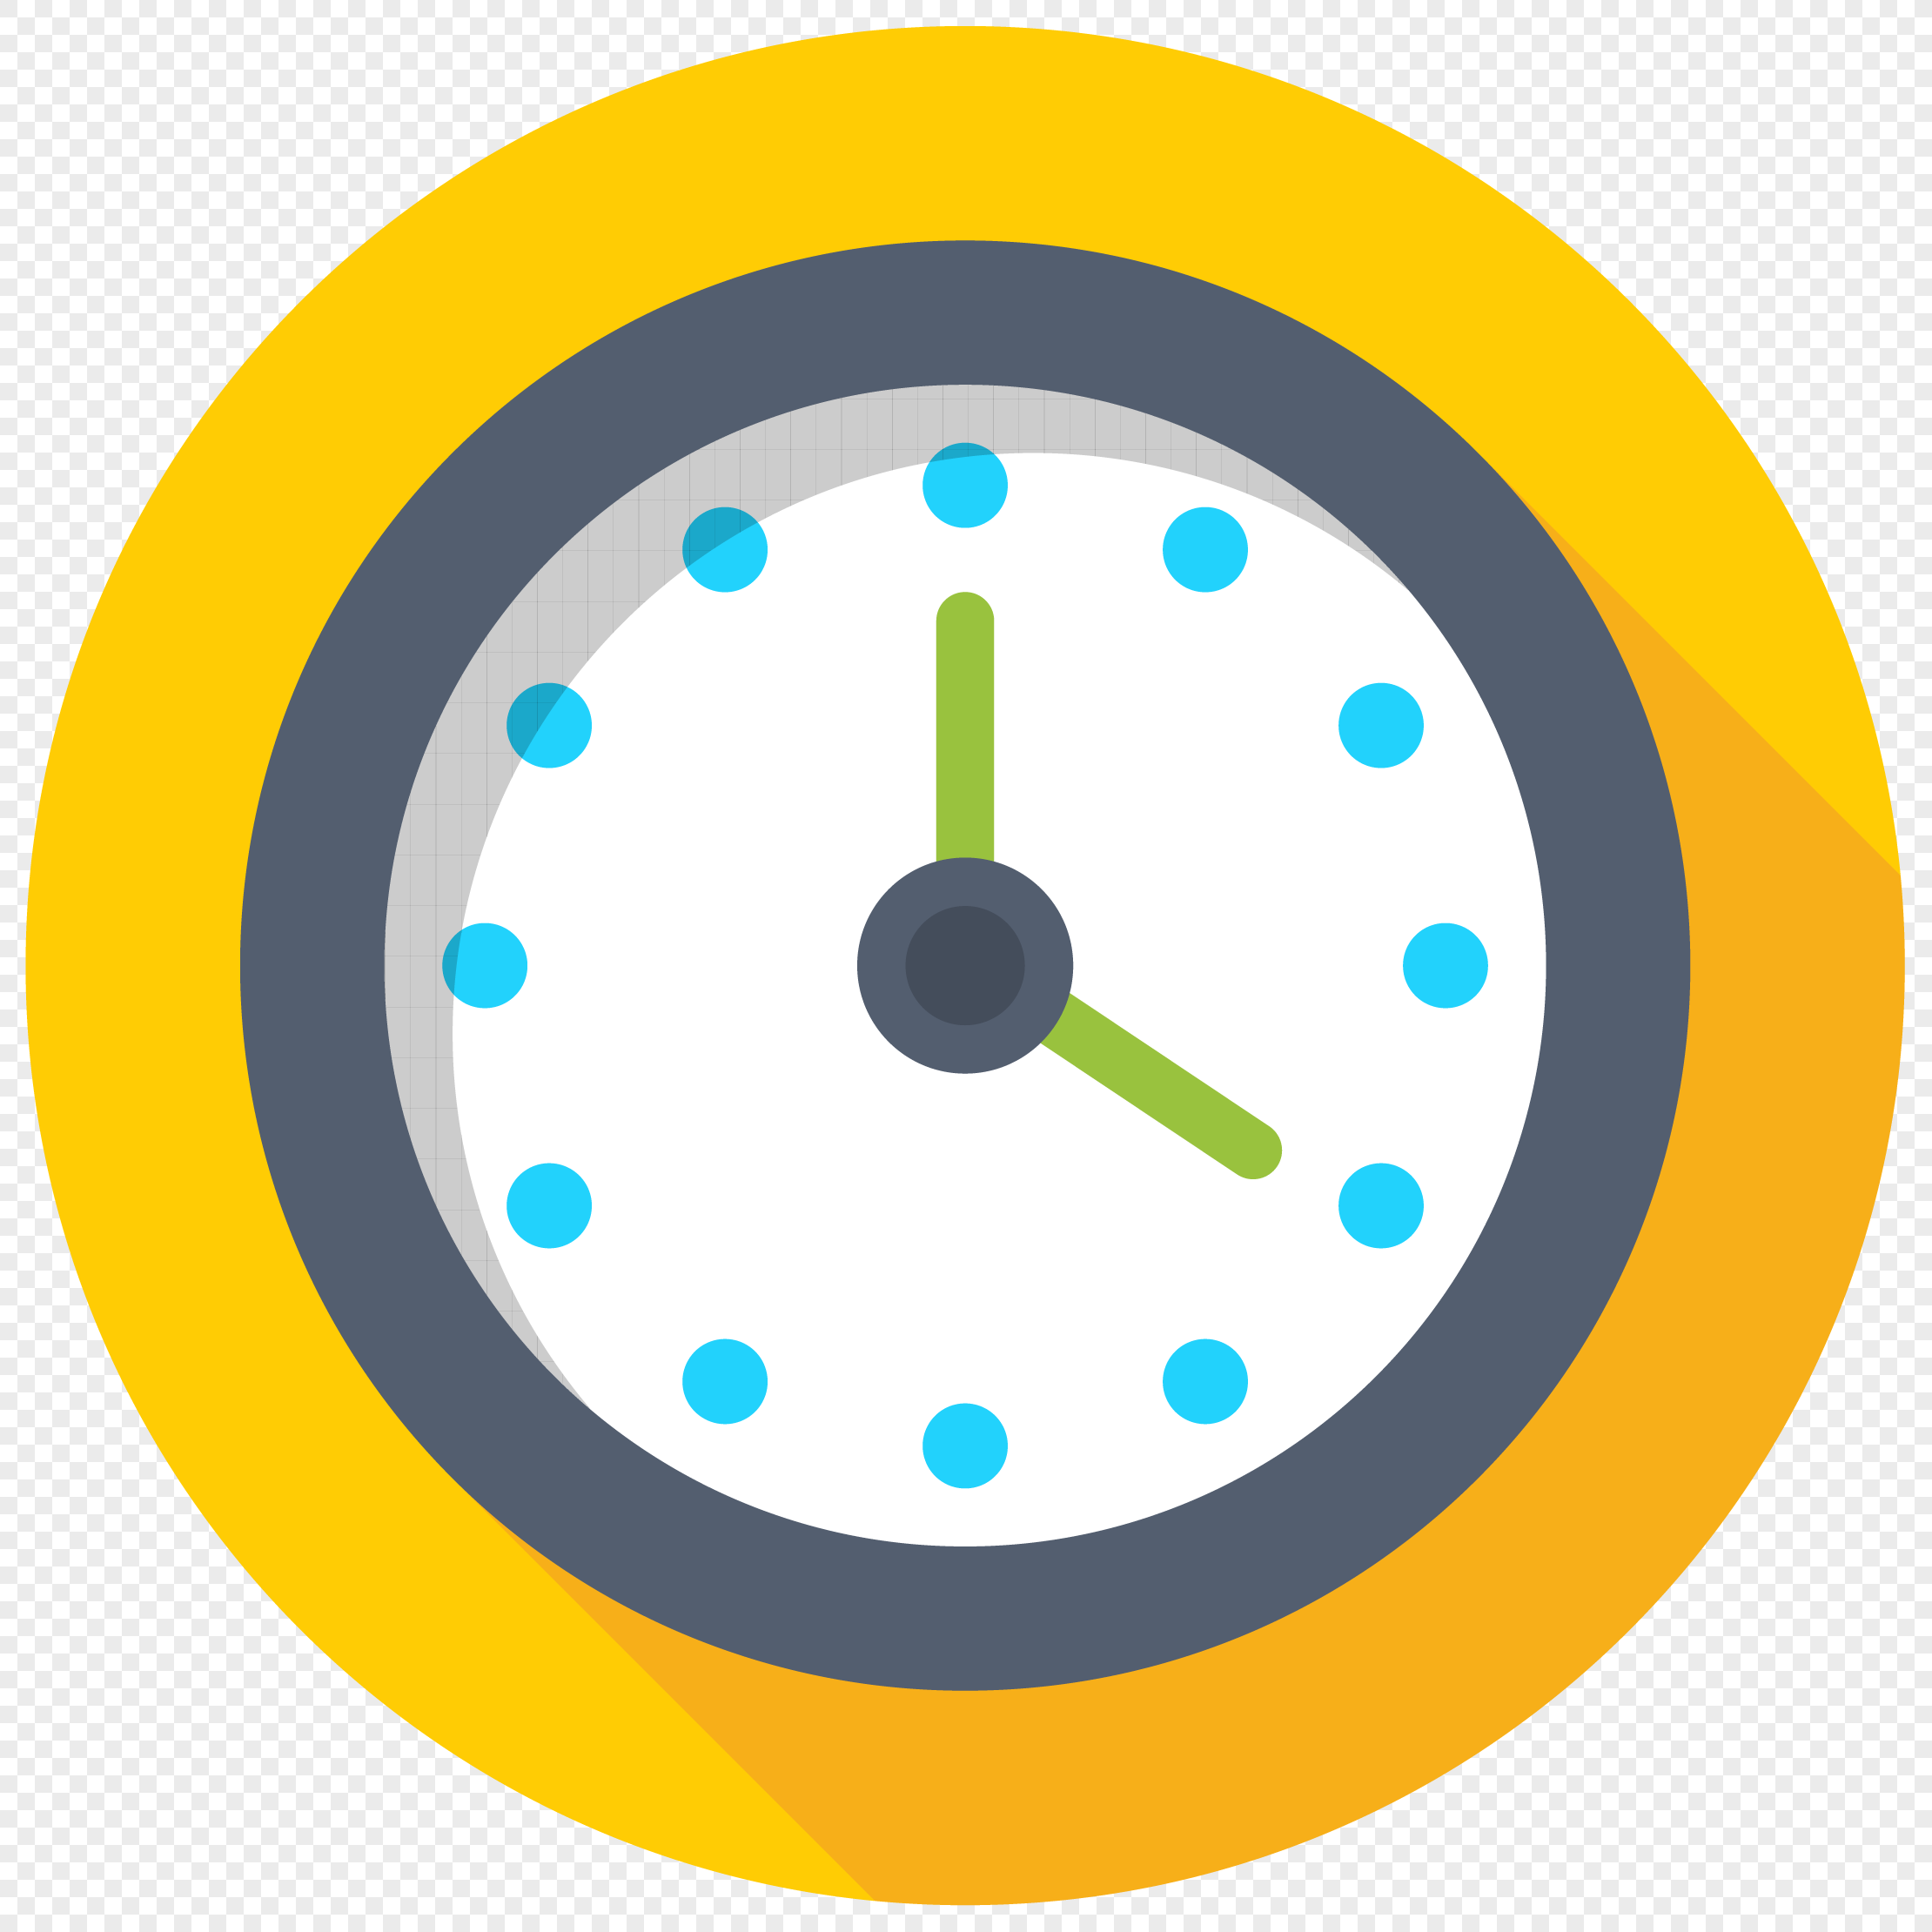 time icon png image picture free download 400682019